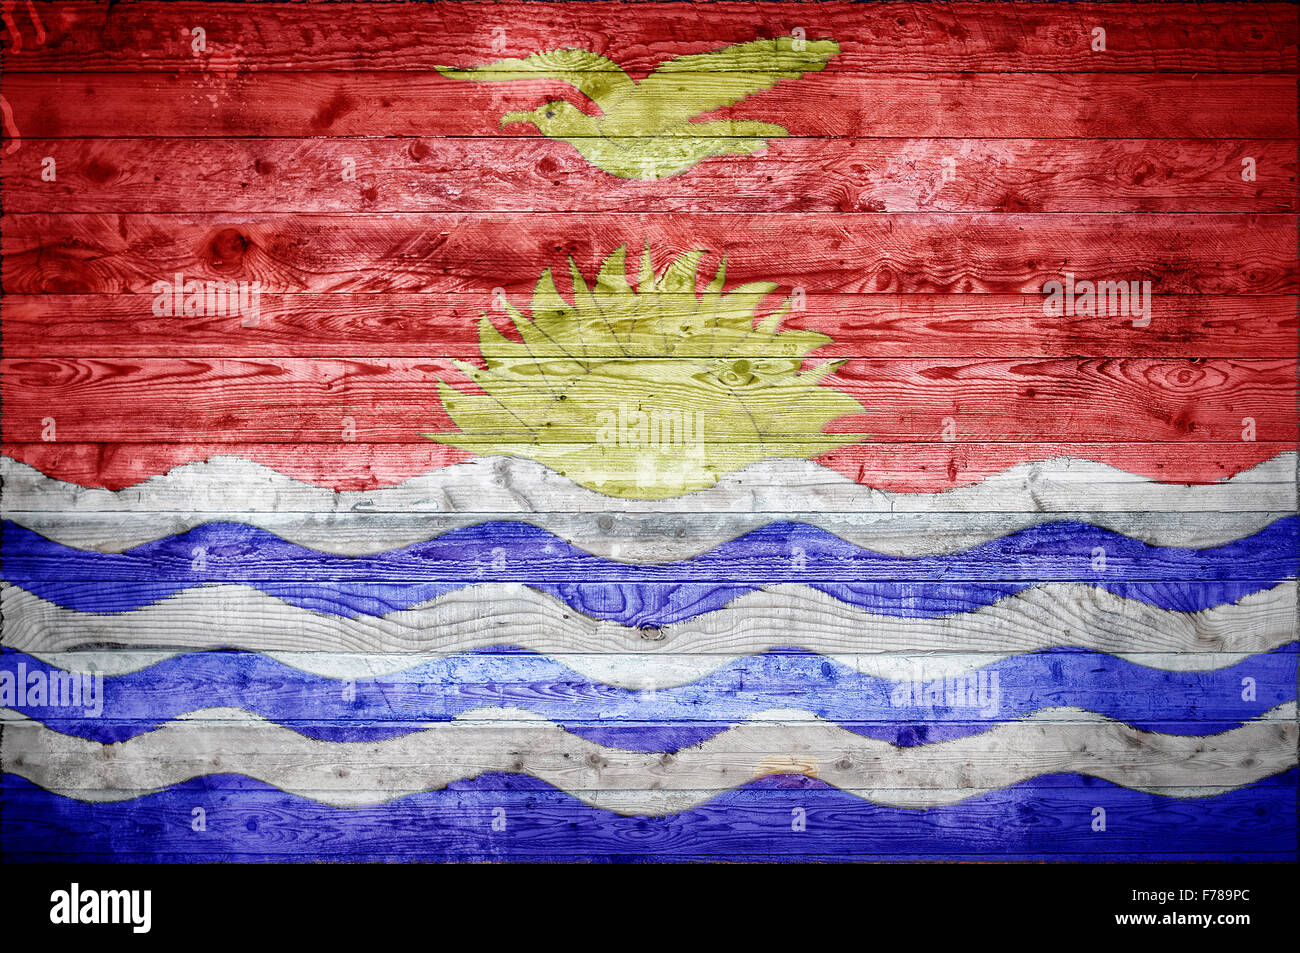 A vignetted background image of the flag of Kiribati painted onto wooden boards of a wall or floor. - Stock Image